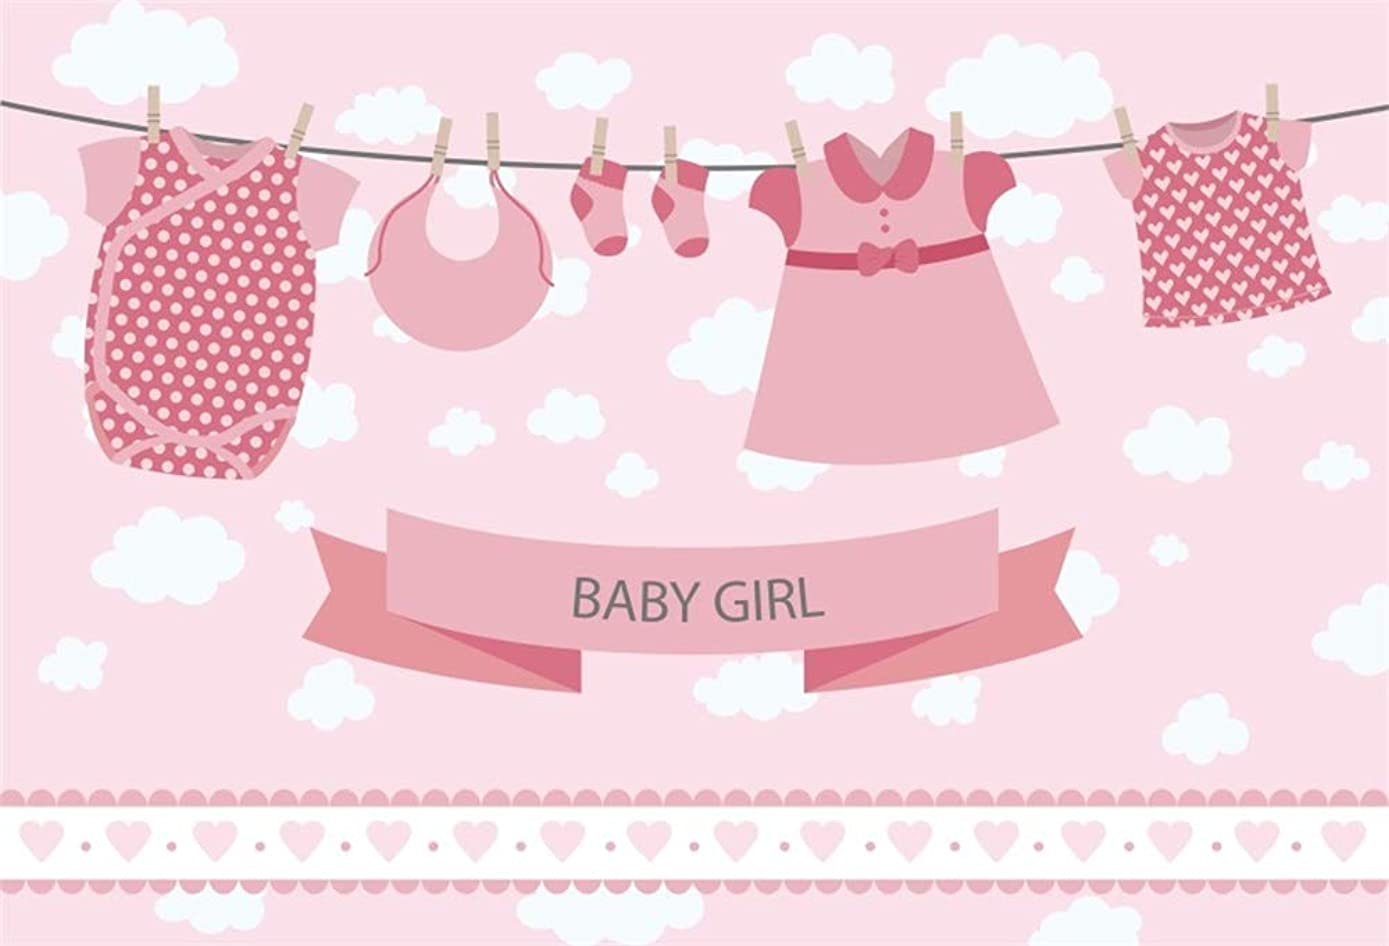 DaShan 5x3ft Polyester Photography Pink Backdrop Baby Shower Girl Rompers Socks Dress Napkin on Clothesline Clouds Background for Birthday Party Banner Picture Taking YouTube Photo Studio Props